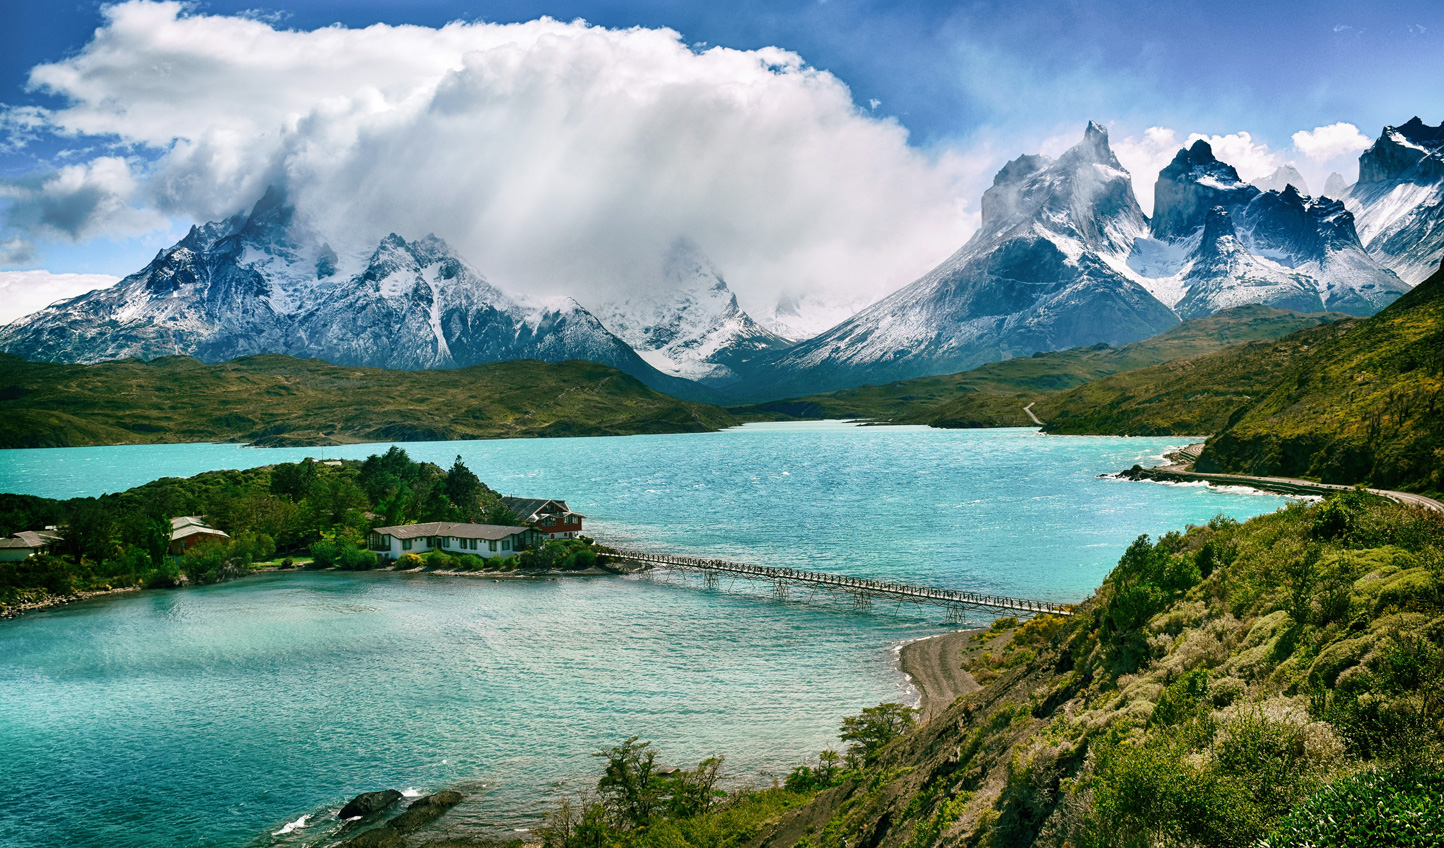 Chile's natural beauty stretches north to south